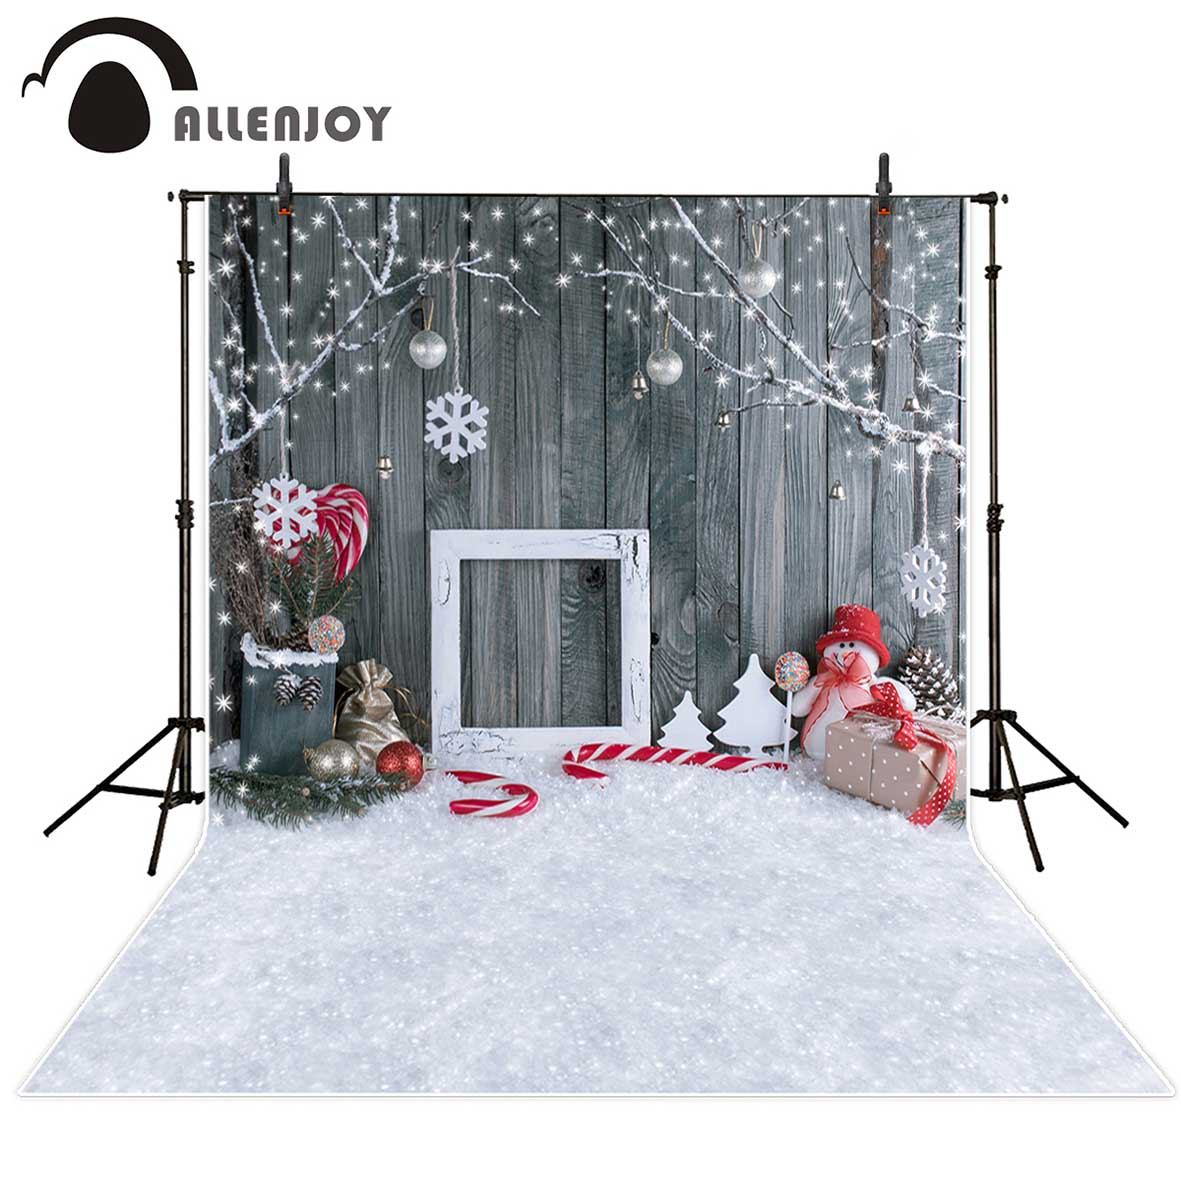 Allenjoy photographic background Christmas snowman gray woodwall snowflake backdrop photocall new photobooth vinyl photography christmas backdrop photography allenjoy snow cap winter snowflakes background photographic studio vinyl children s camera photo